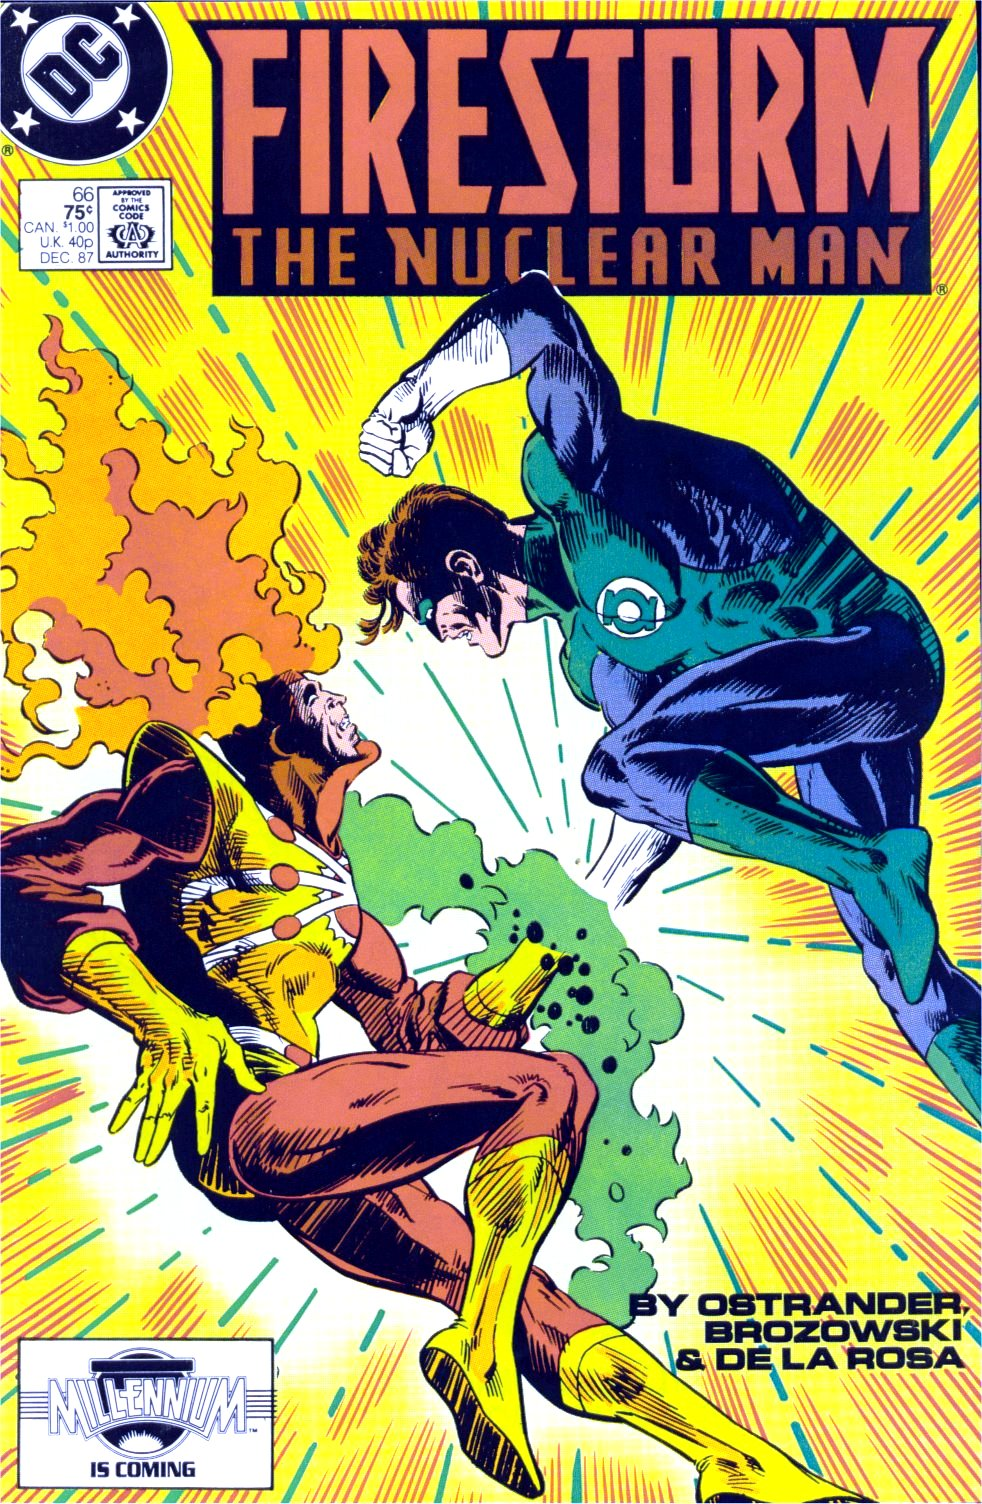 Firestorm, the Nuclear Man 66 Page 1